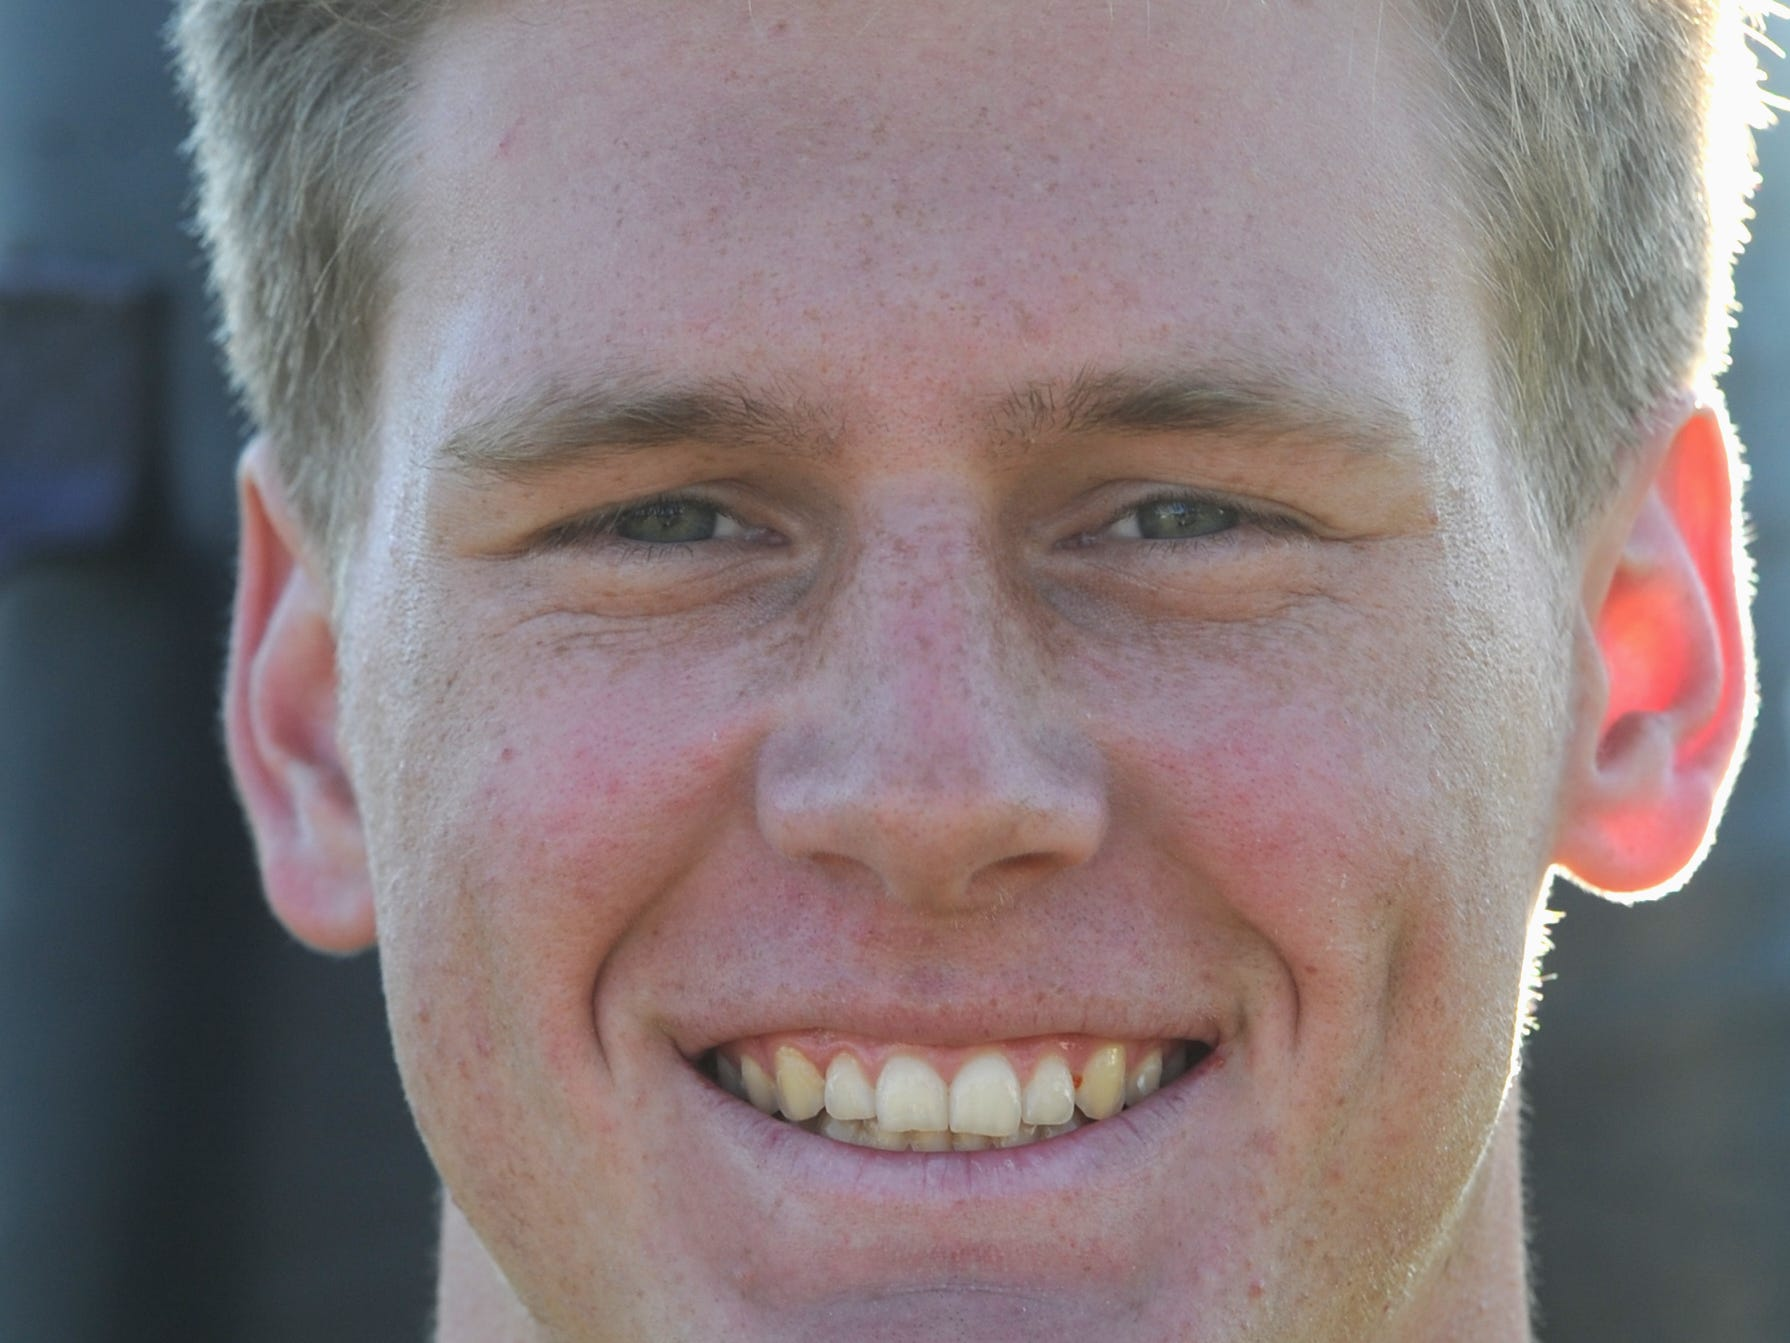 """DREW CARTER, Camarillo, Linebacker: The 6-foot-1, 190-pound senior captain led the Scorpions to an 11-win season. Quick and instinctive, the Camino League co-Linebacker of the Year amassed 115 tackles for the second straight year, including 15 apiece against Bishop Diego and Grace Brethren. He also had two sacks, a pair of interception returns for touchdowns, a blocked punt and a blocked field goal. He had 27.5 tackles for a loss in his three-year varsity career. His hobbies include surfing, fishing, skiing and camping. He enjoys watching """"The Office"""" and eating pizza. Luke Kuechly is his favorite athlete. He roots for the Denver Broncos."""